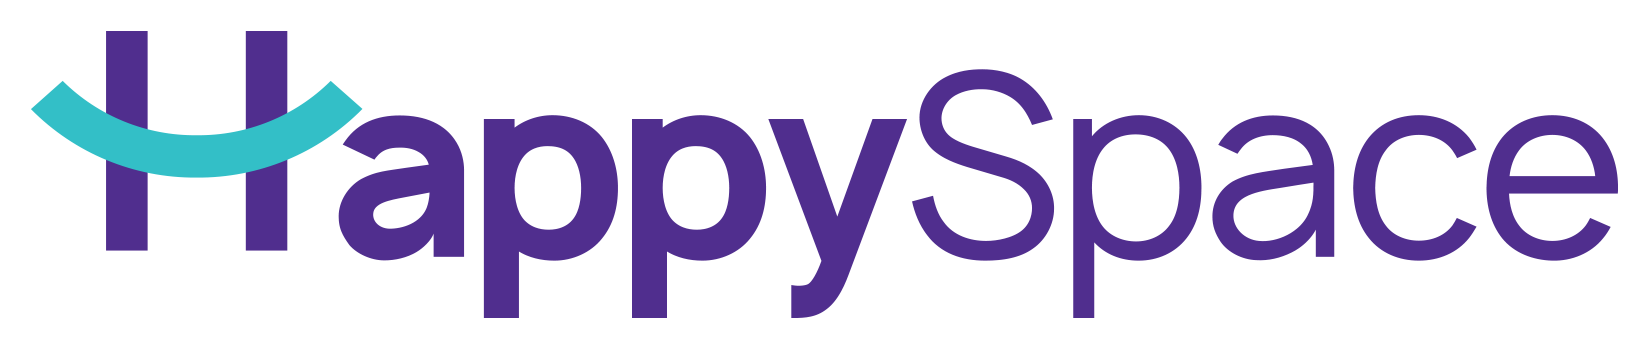 Your Happy Space - Brand Guide [YHS] Logo